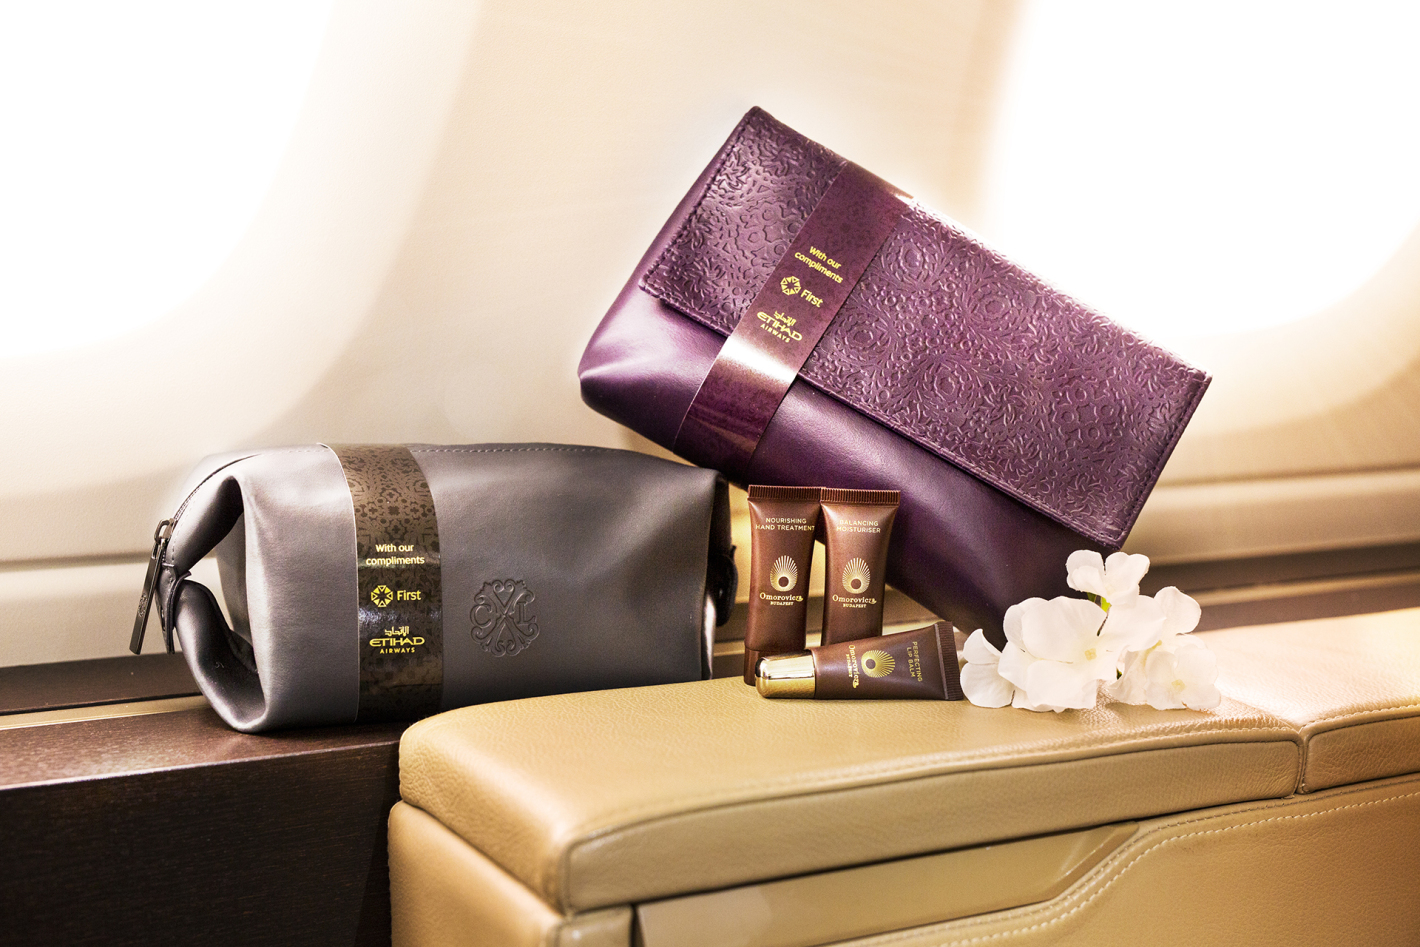 Etihad First Class Amenity Kits